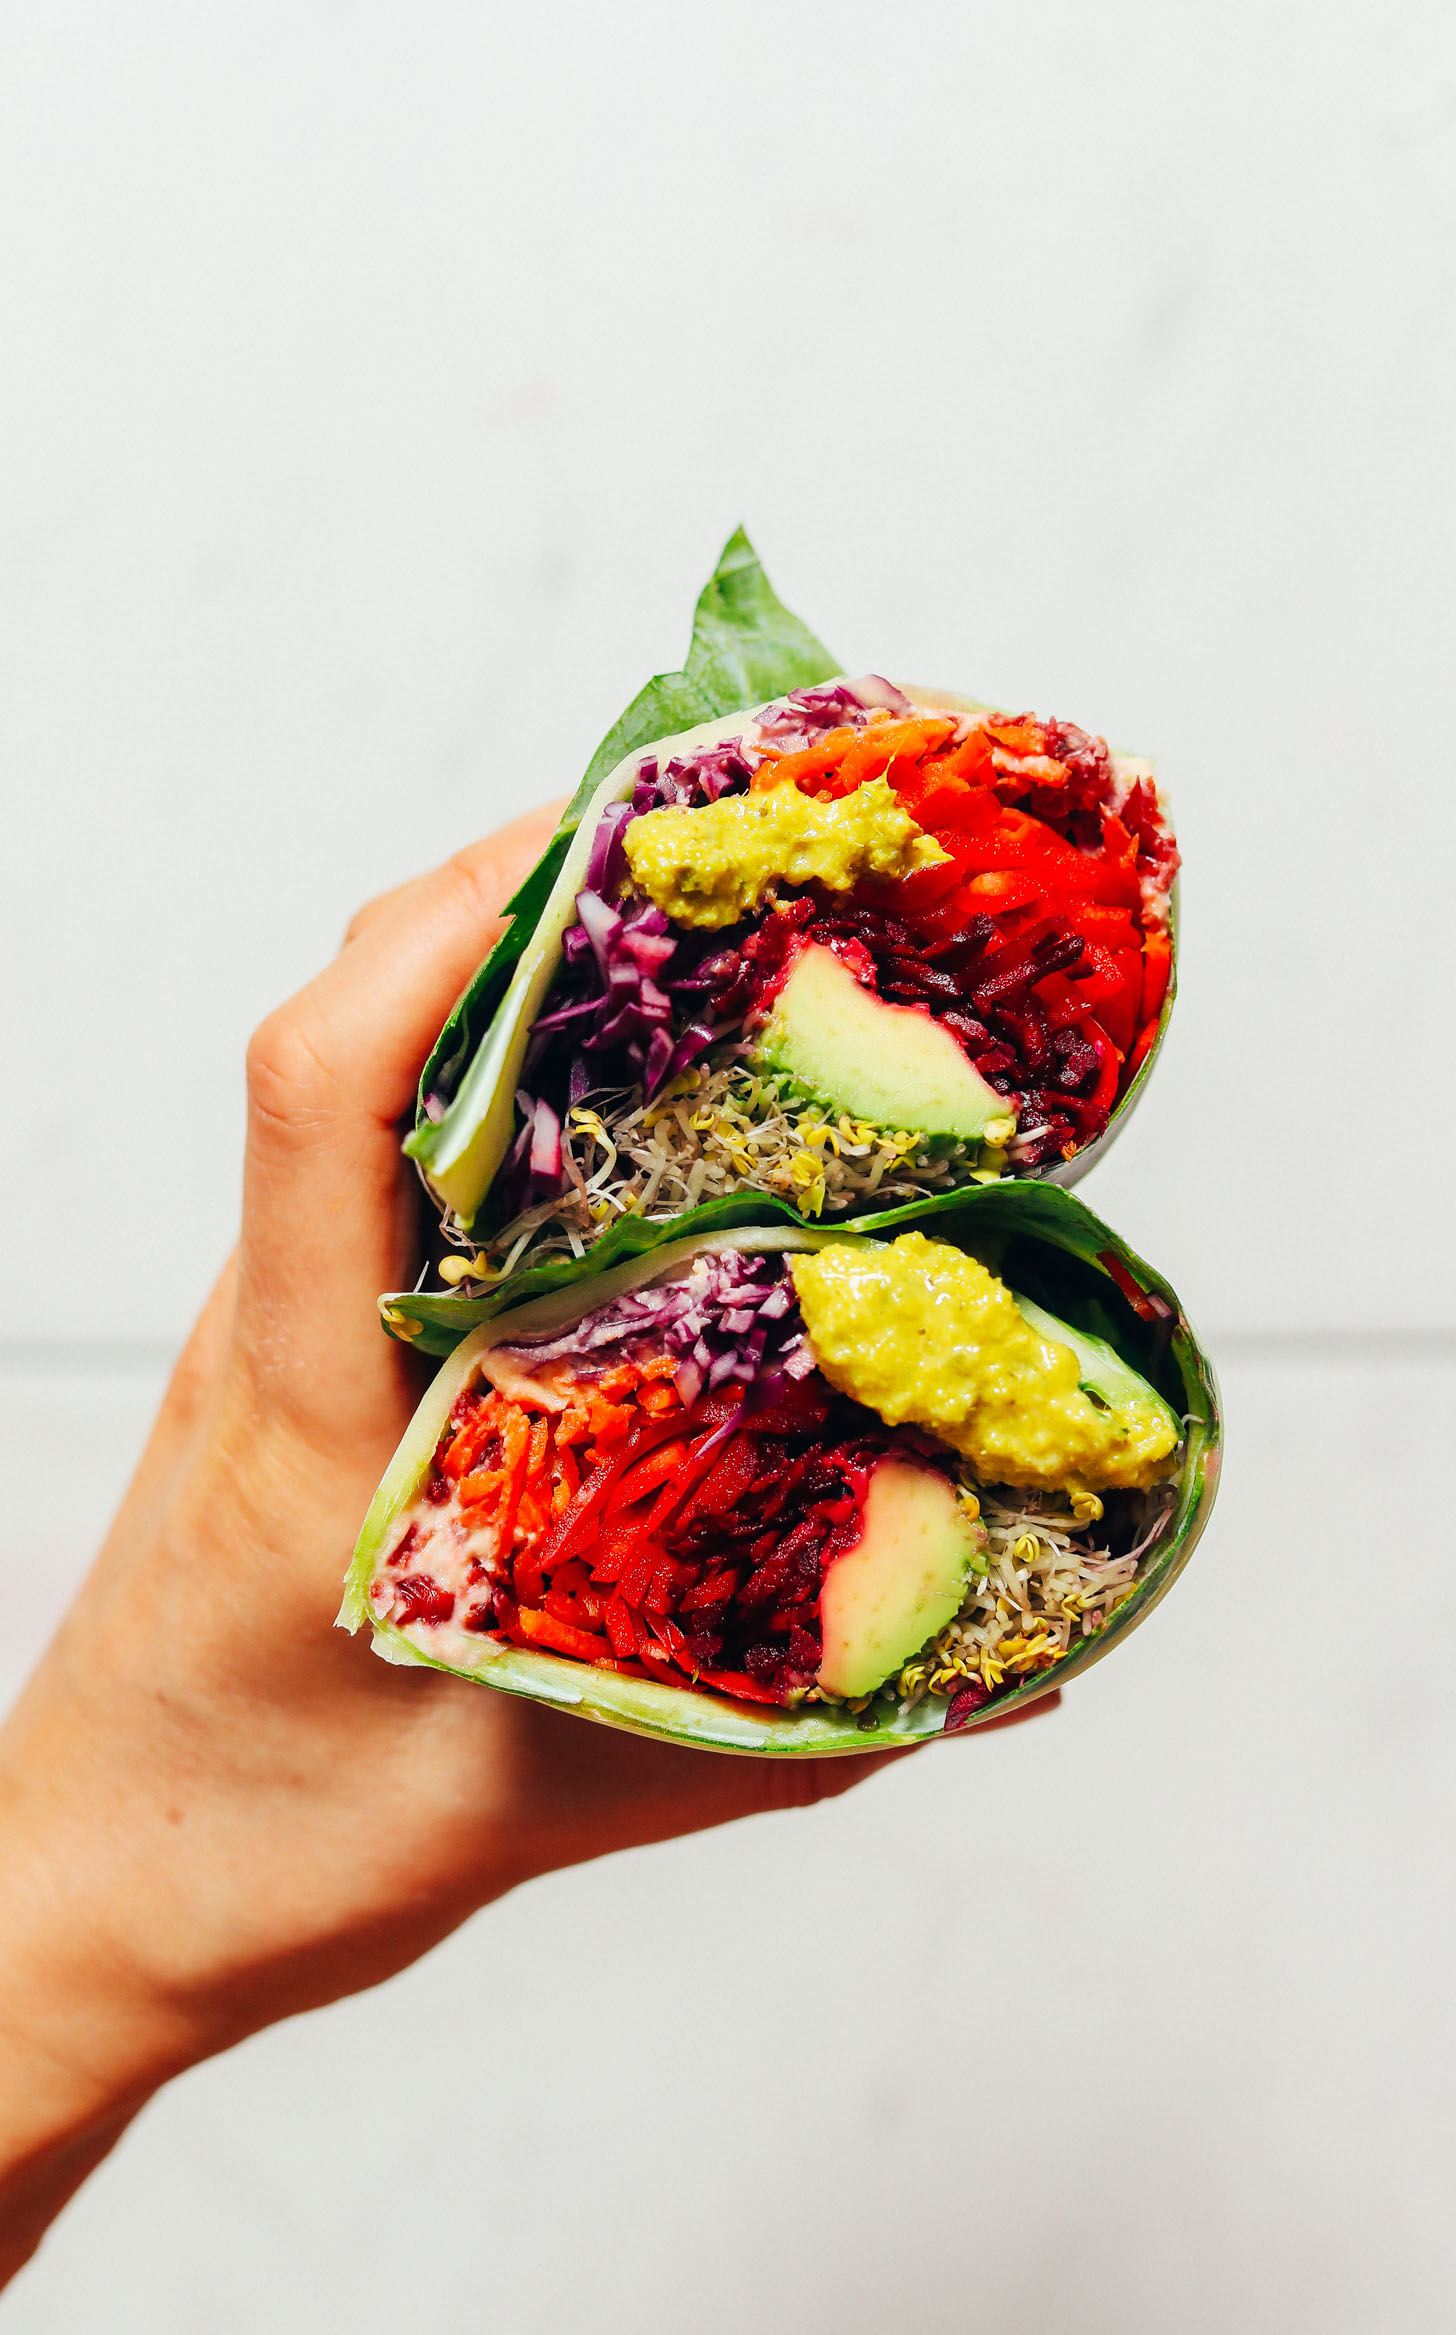 Holding up a Collard Wrap filled with fresh veggies and green curry tahini sauce